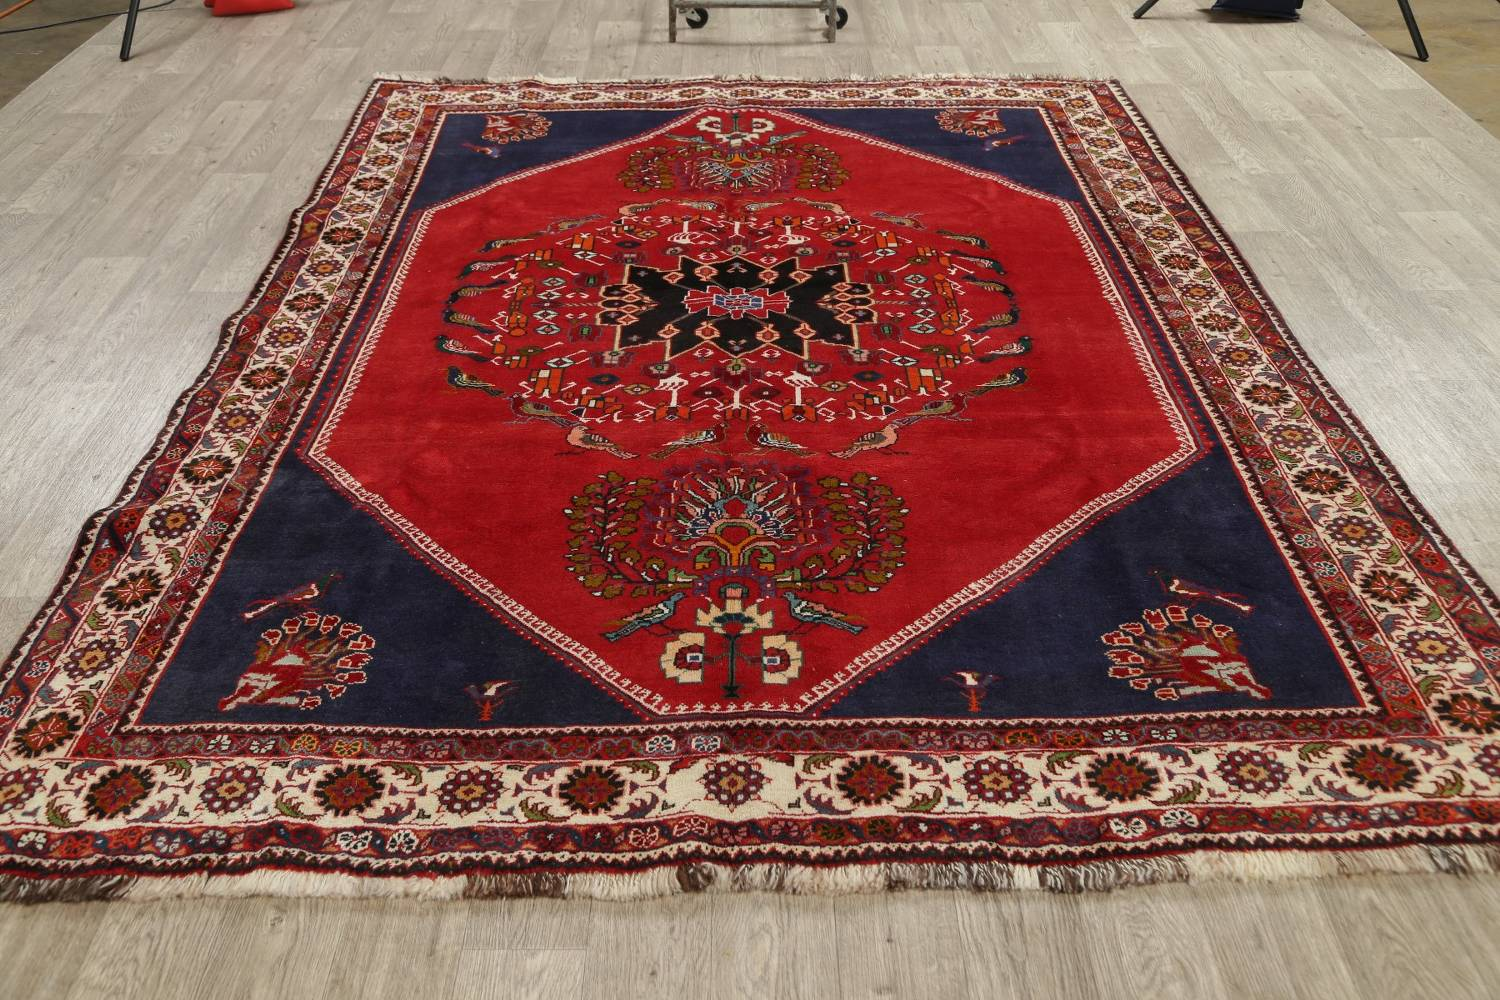 Animal Pictorial Kashkoli Persian Hand-Knotted 7x9 Wool Area Rug image 14